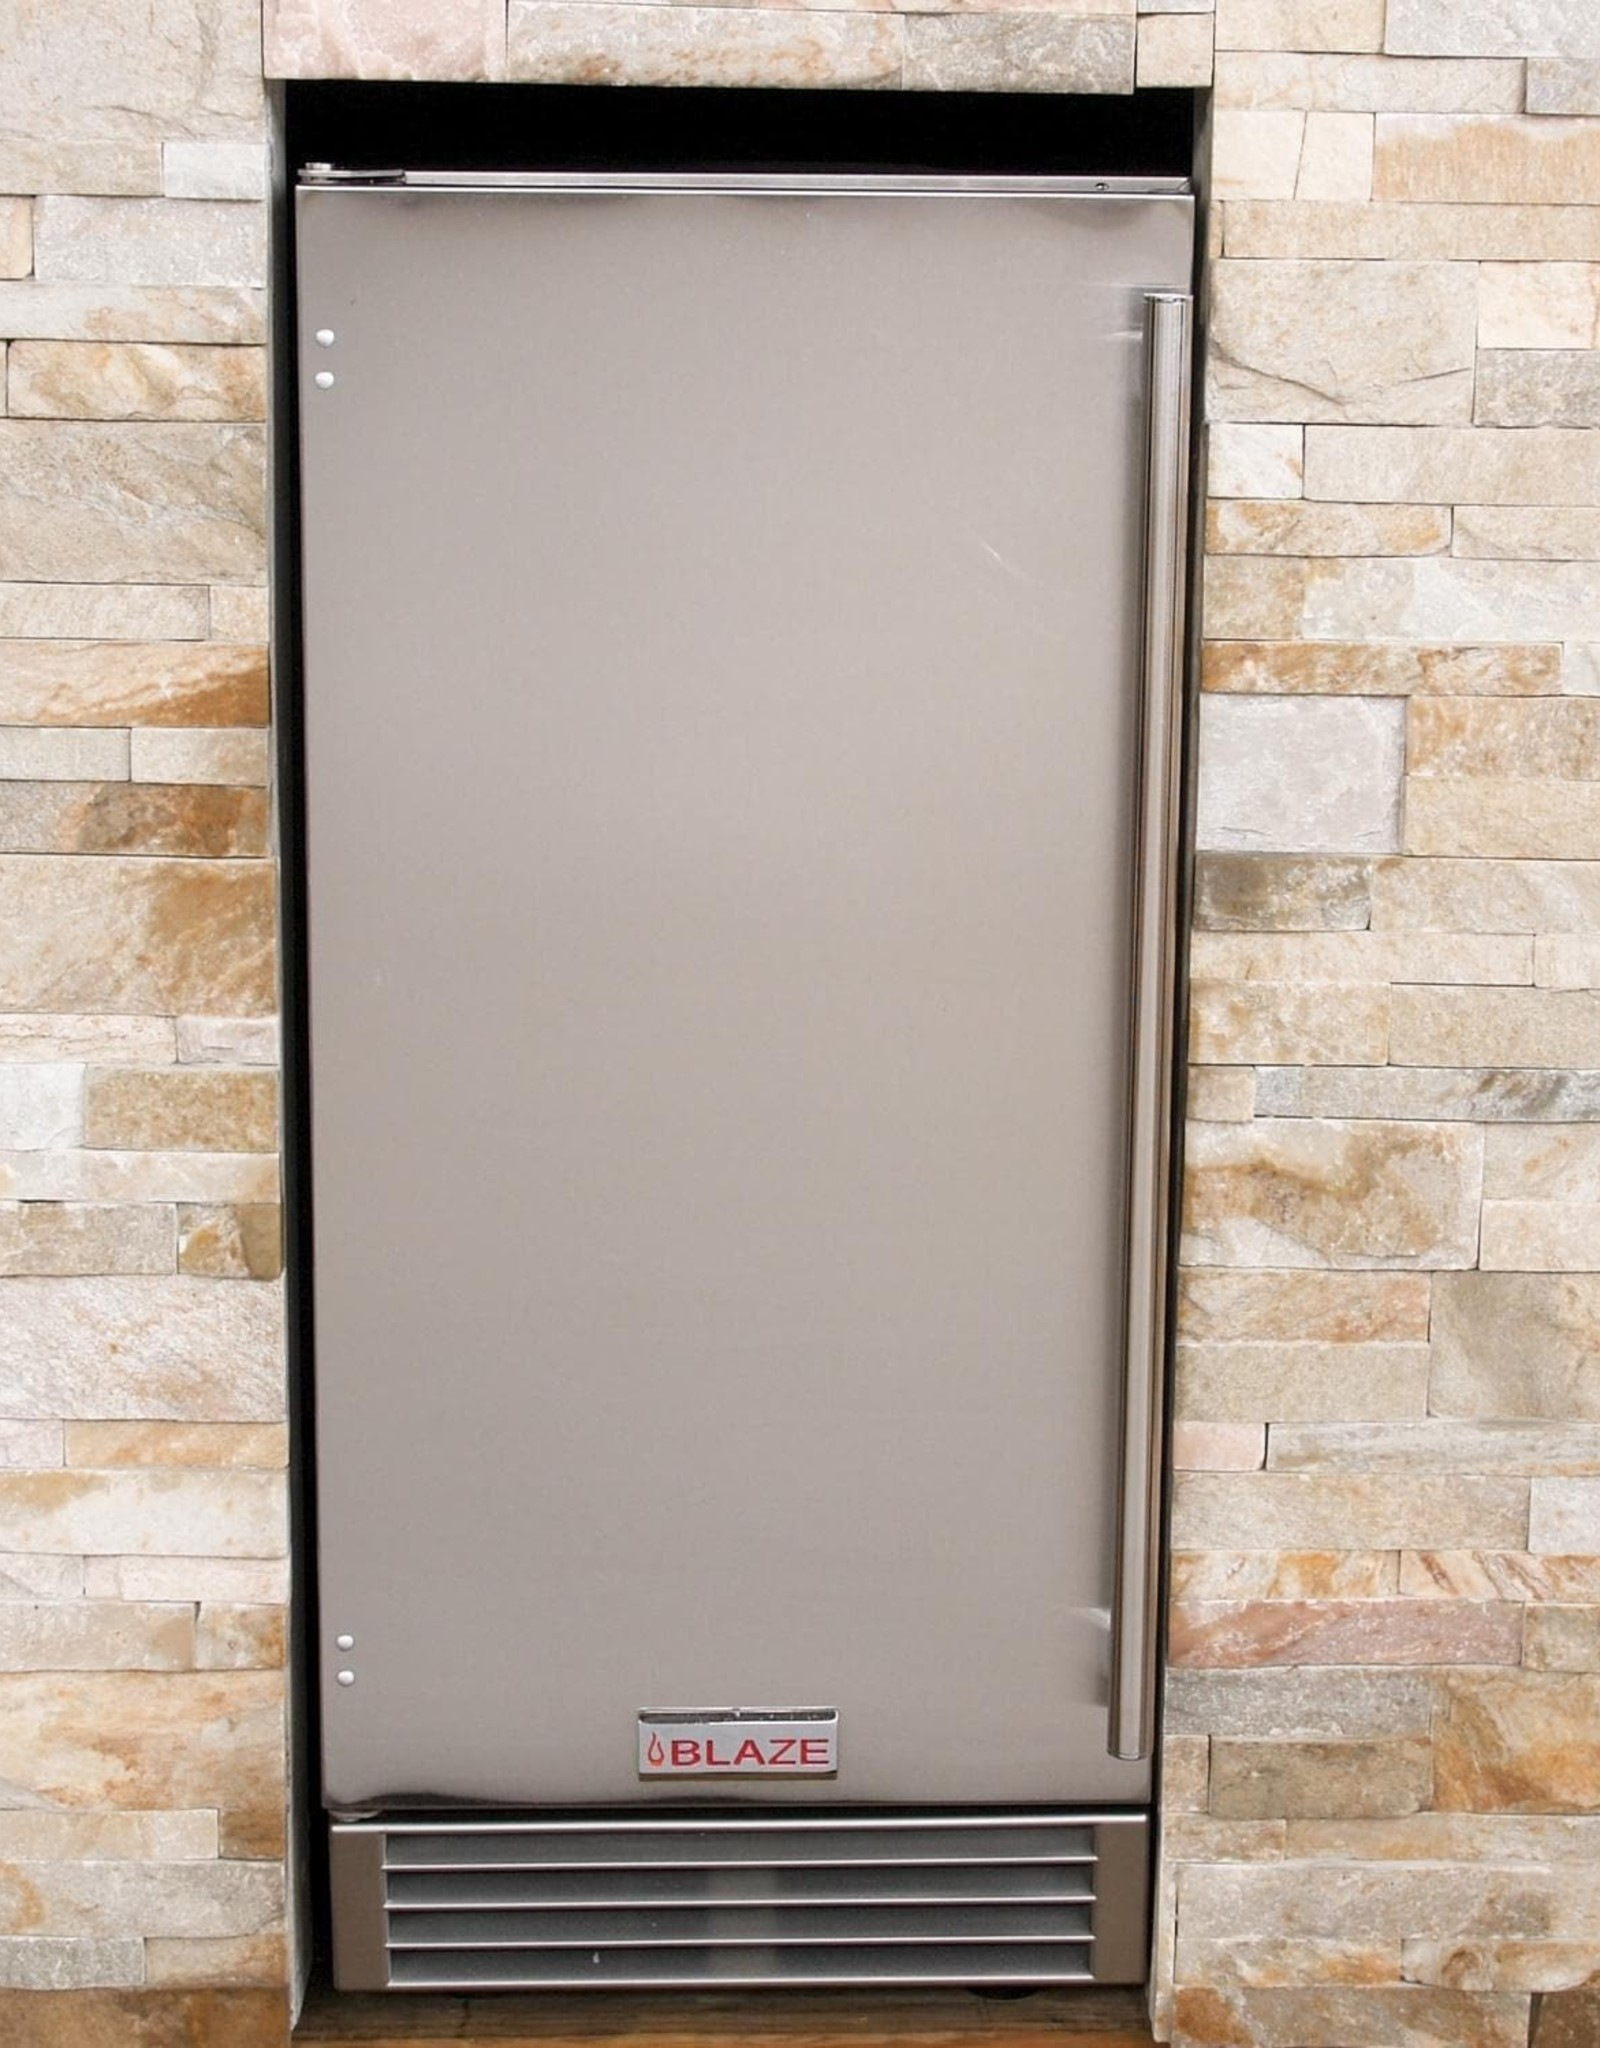 Blaze Outdoor Products Blaze 50 Lb. 15-Inch Outdoor Rated Ice Maker With Gravity Drain - BLZ-ICEMKR-50GR